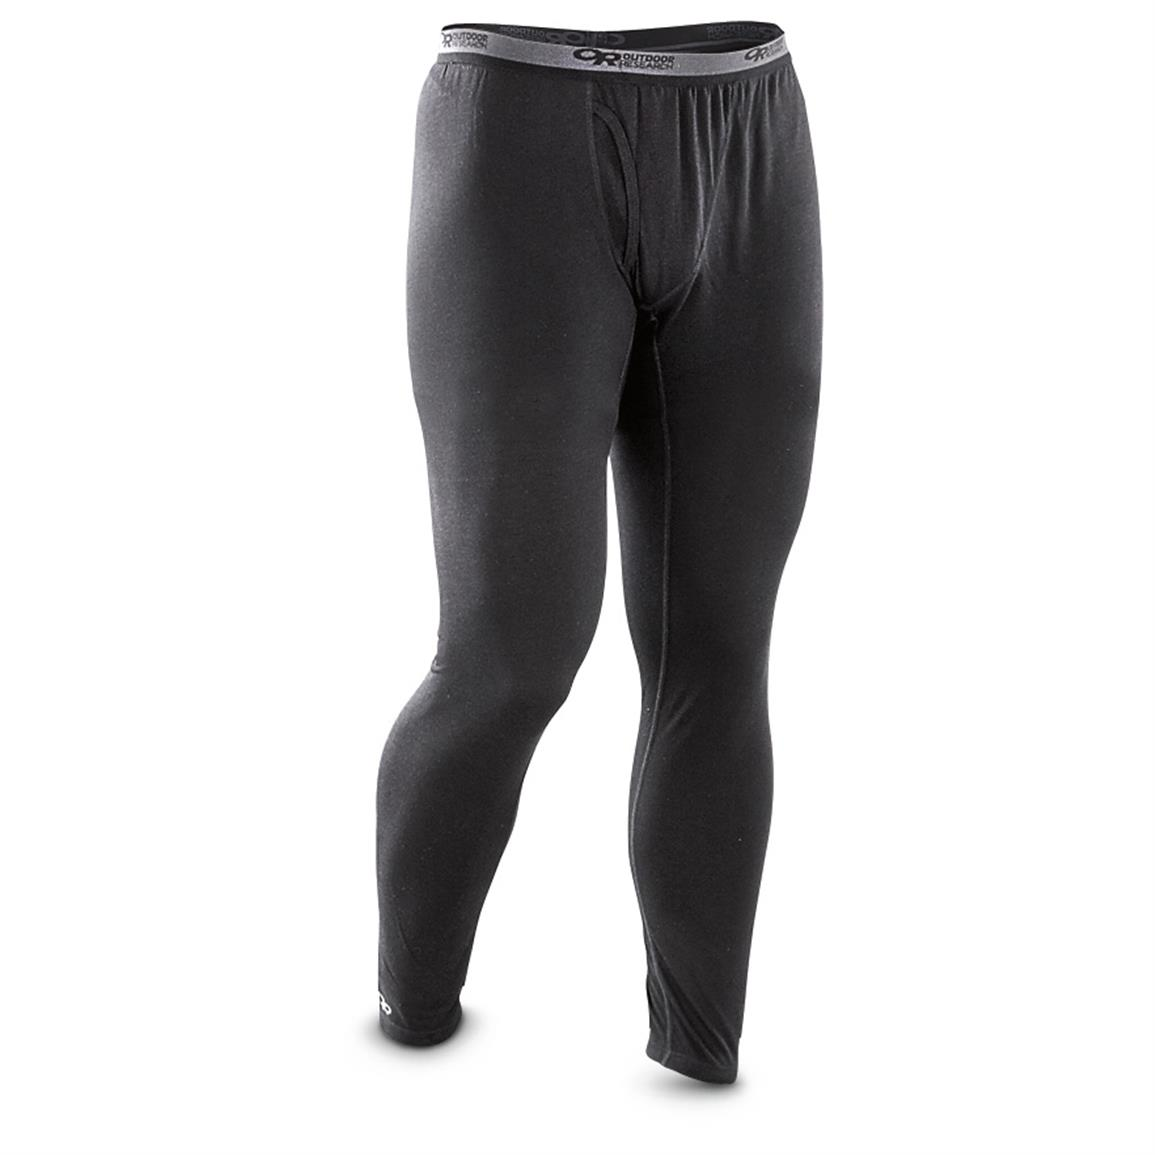 Outdoor Research Sequence Men's Leggings, Black